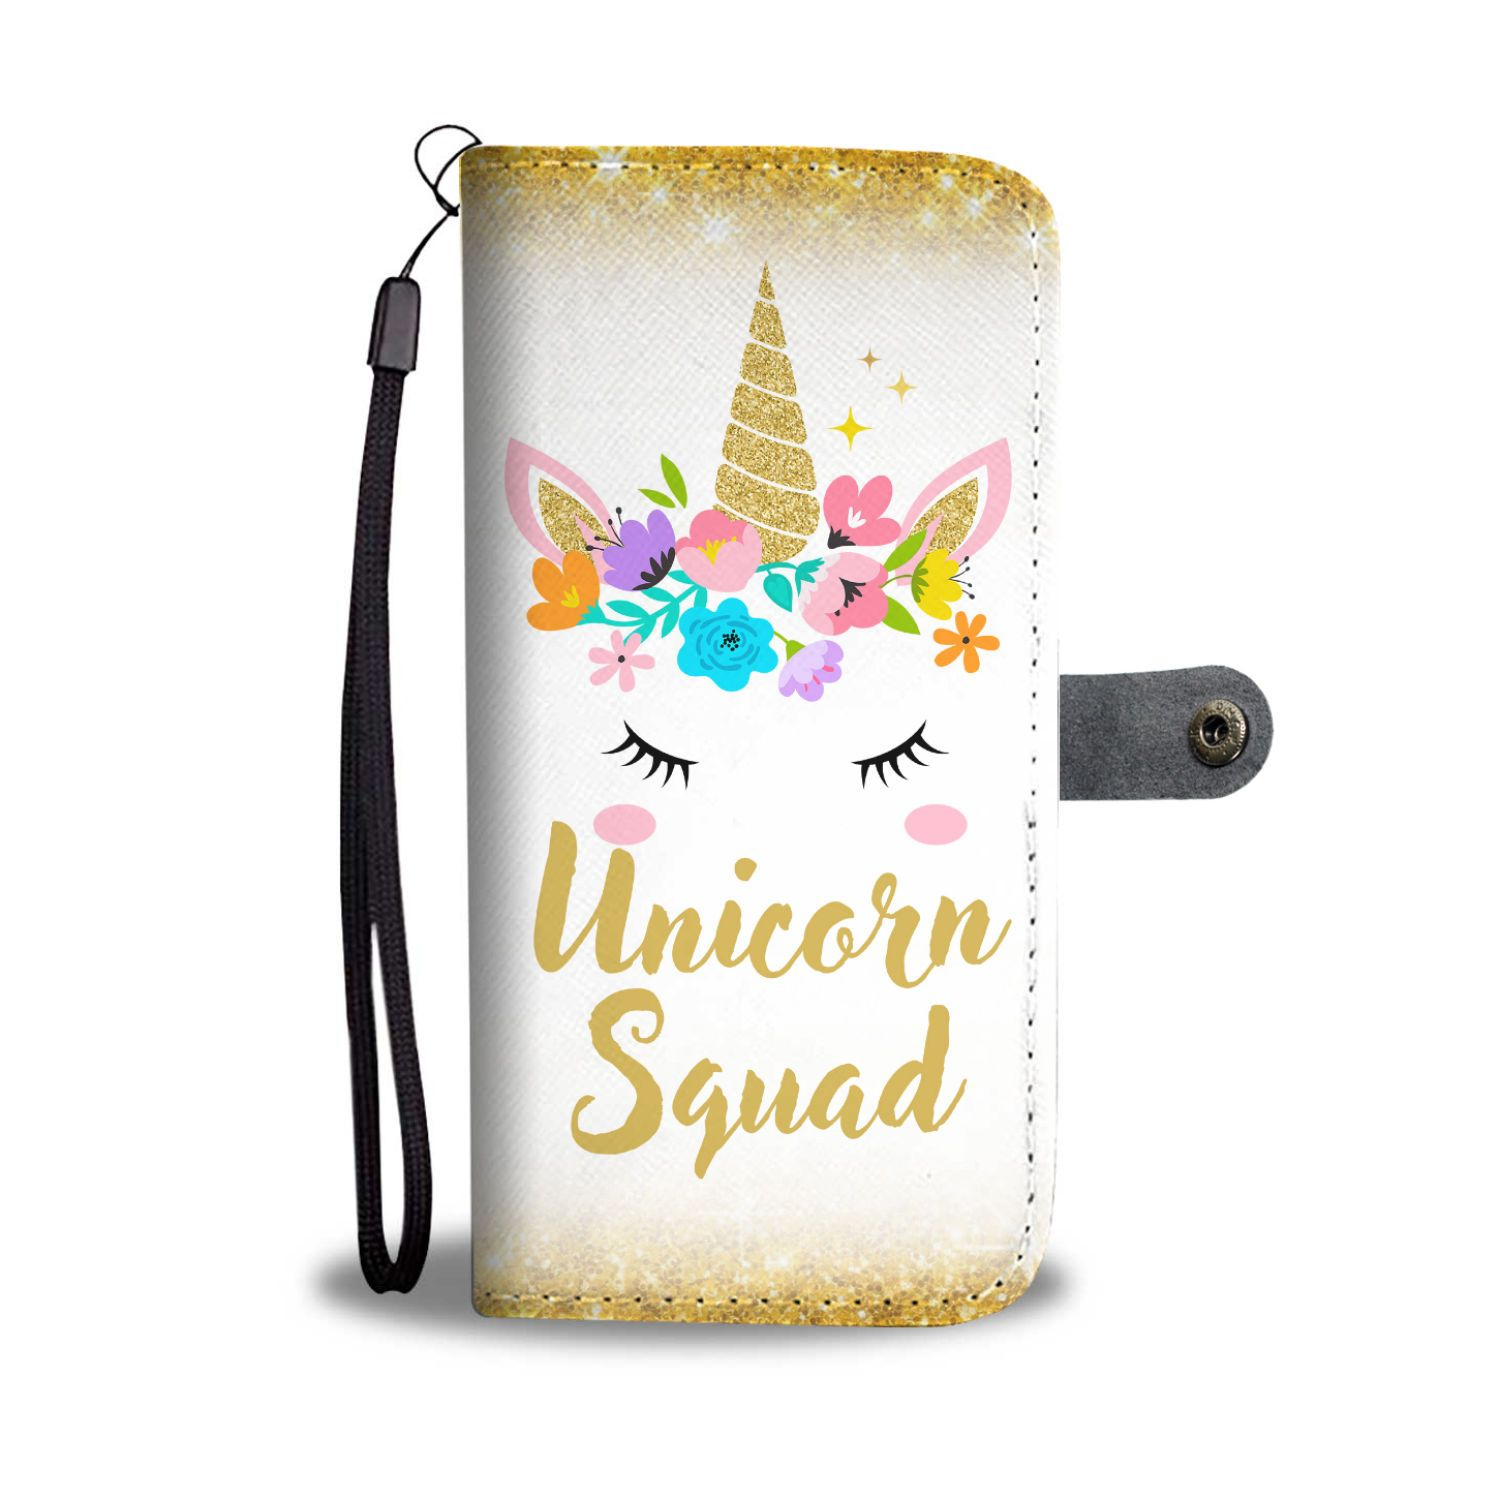 Unicorn Squad Phone Case Wallet Wallet Case